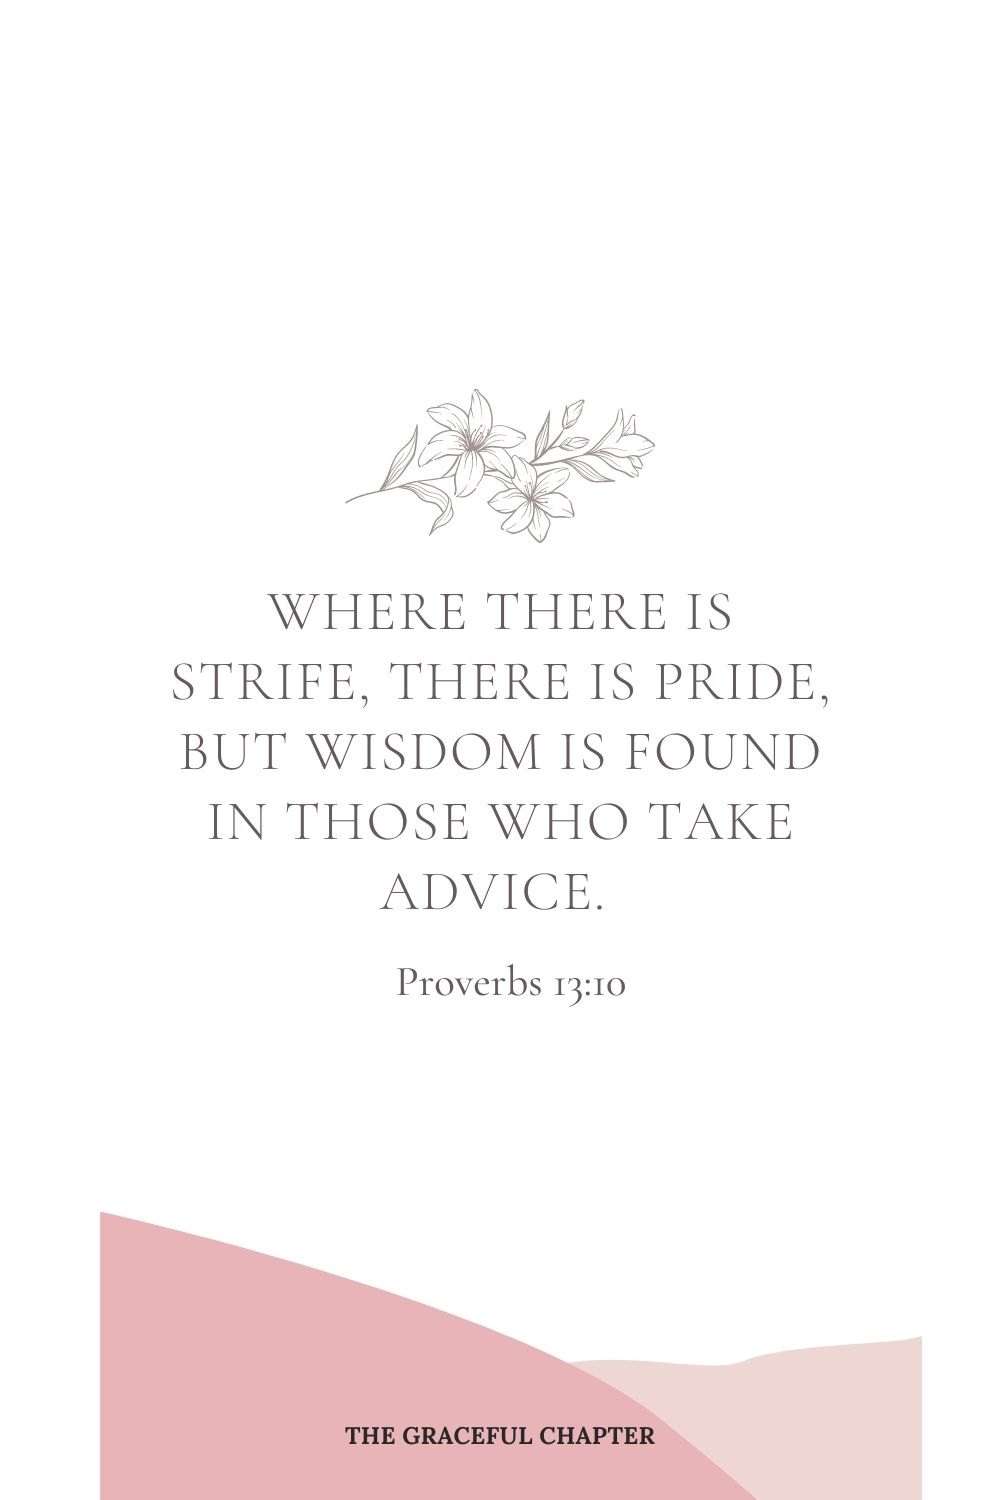 Where there is strife, there is pride,  but wisdom is found in those who take advice. Proverbs 13:10